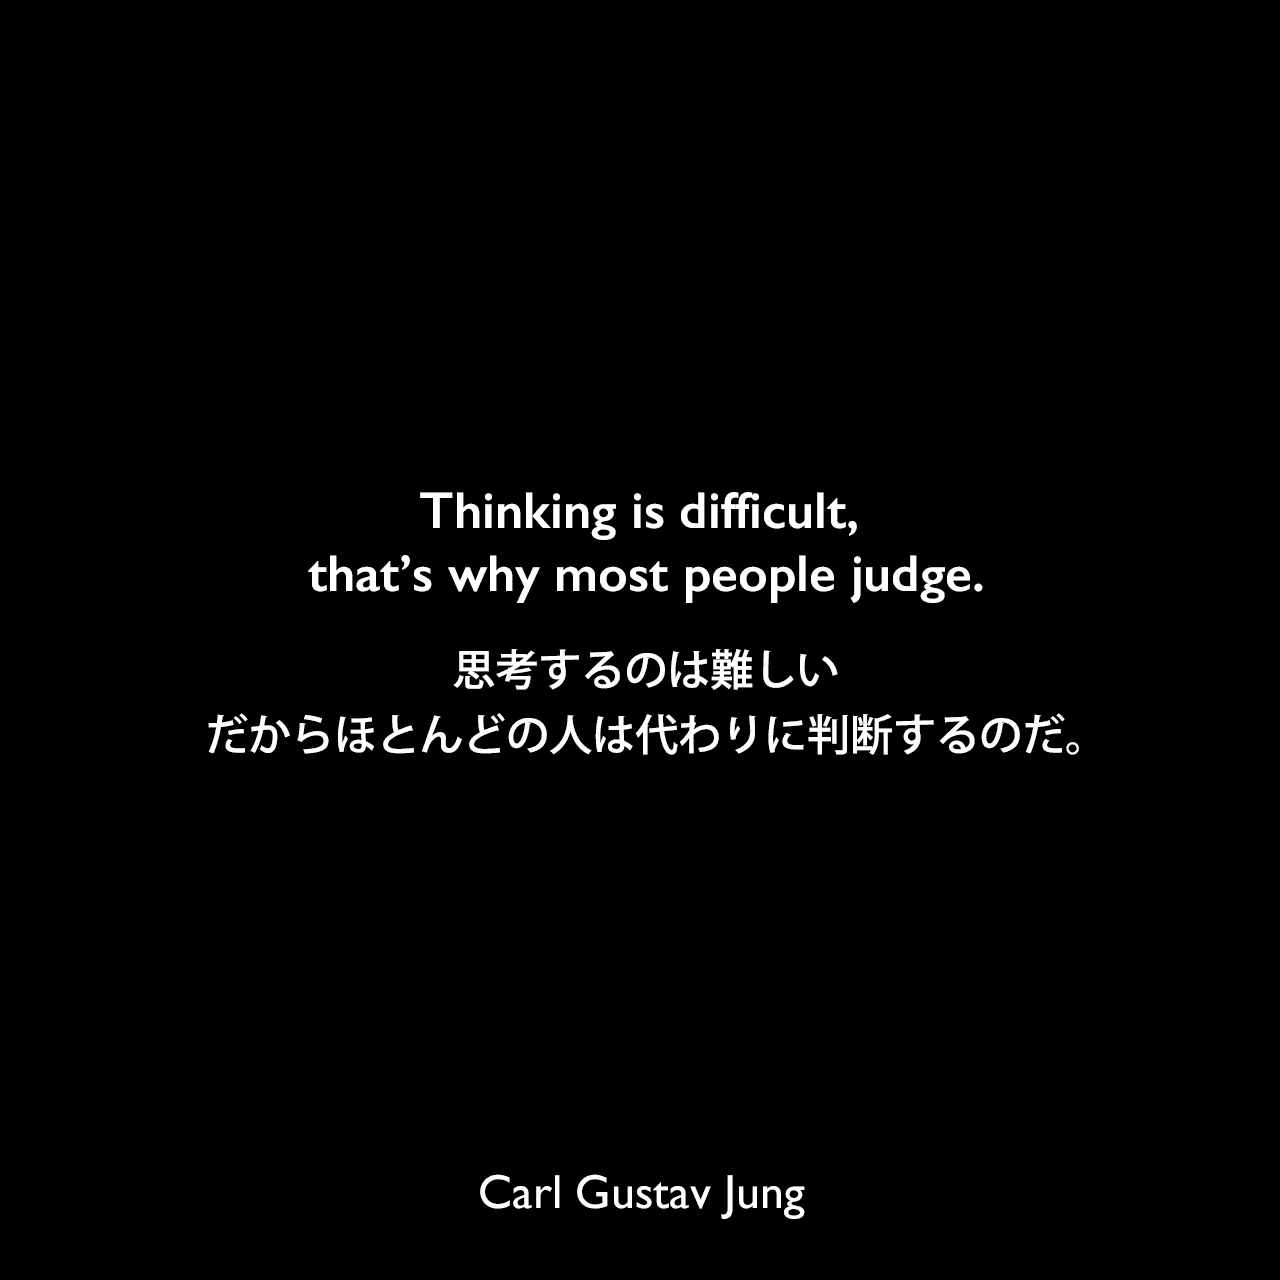 Thinking is difficult, that's why most people judge.思考するのは難しい、だからほとんどの人は代わりに判断するのだ。- ユングによる本「Flying Saucers: A Modern Myth of Things Seen in the Sky」よりCarl Gustav Jung